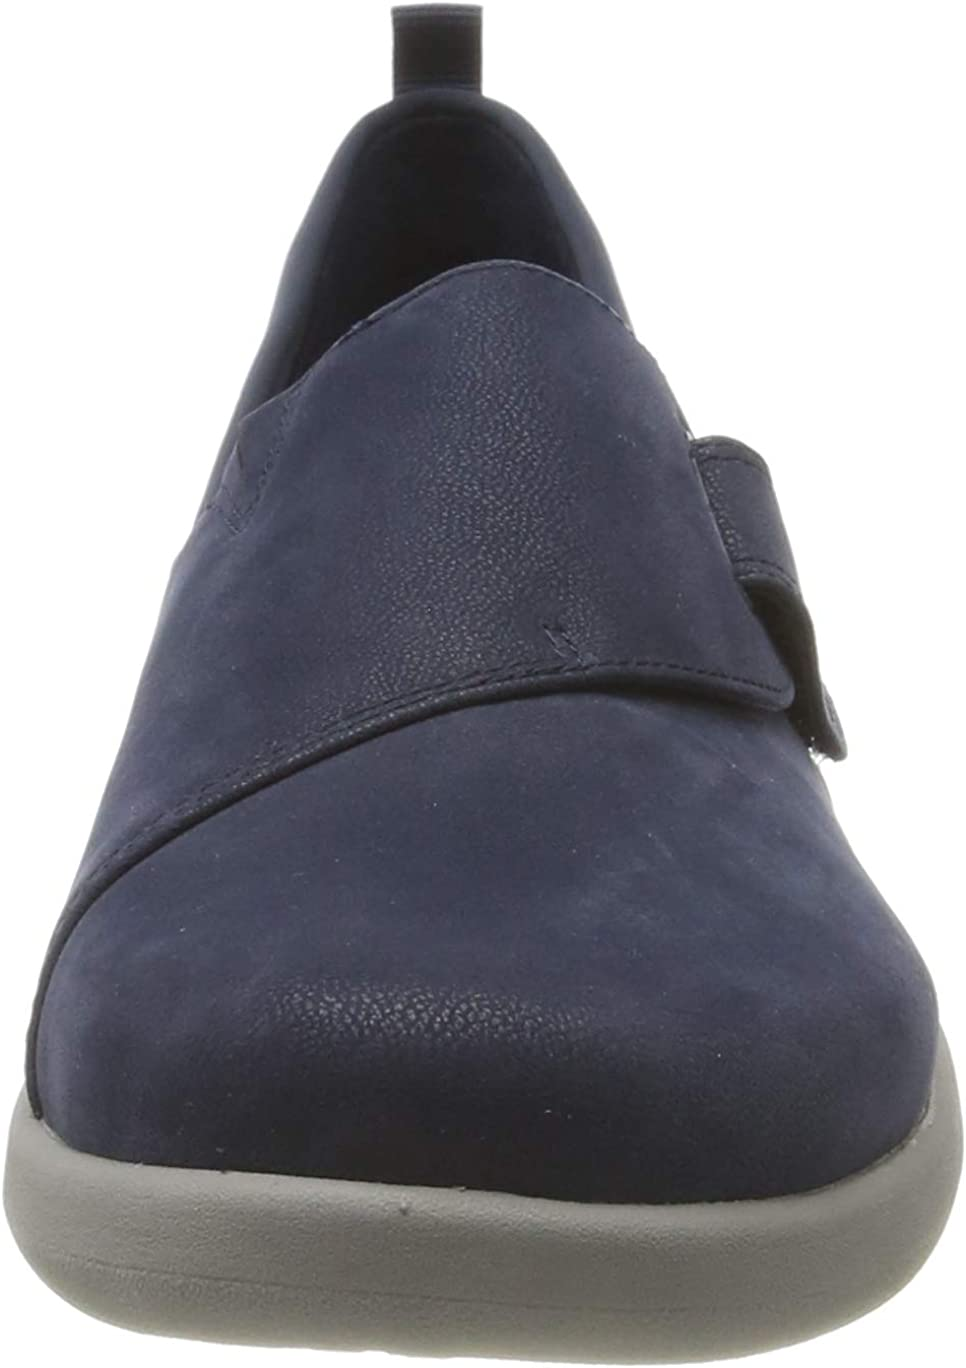 Clarks Sillian2.0ease, Mocasines para Mujer: Amazon.es: Zapatos y ...